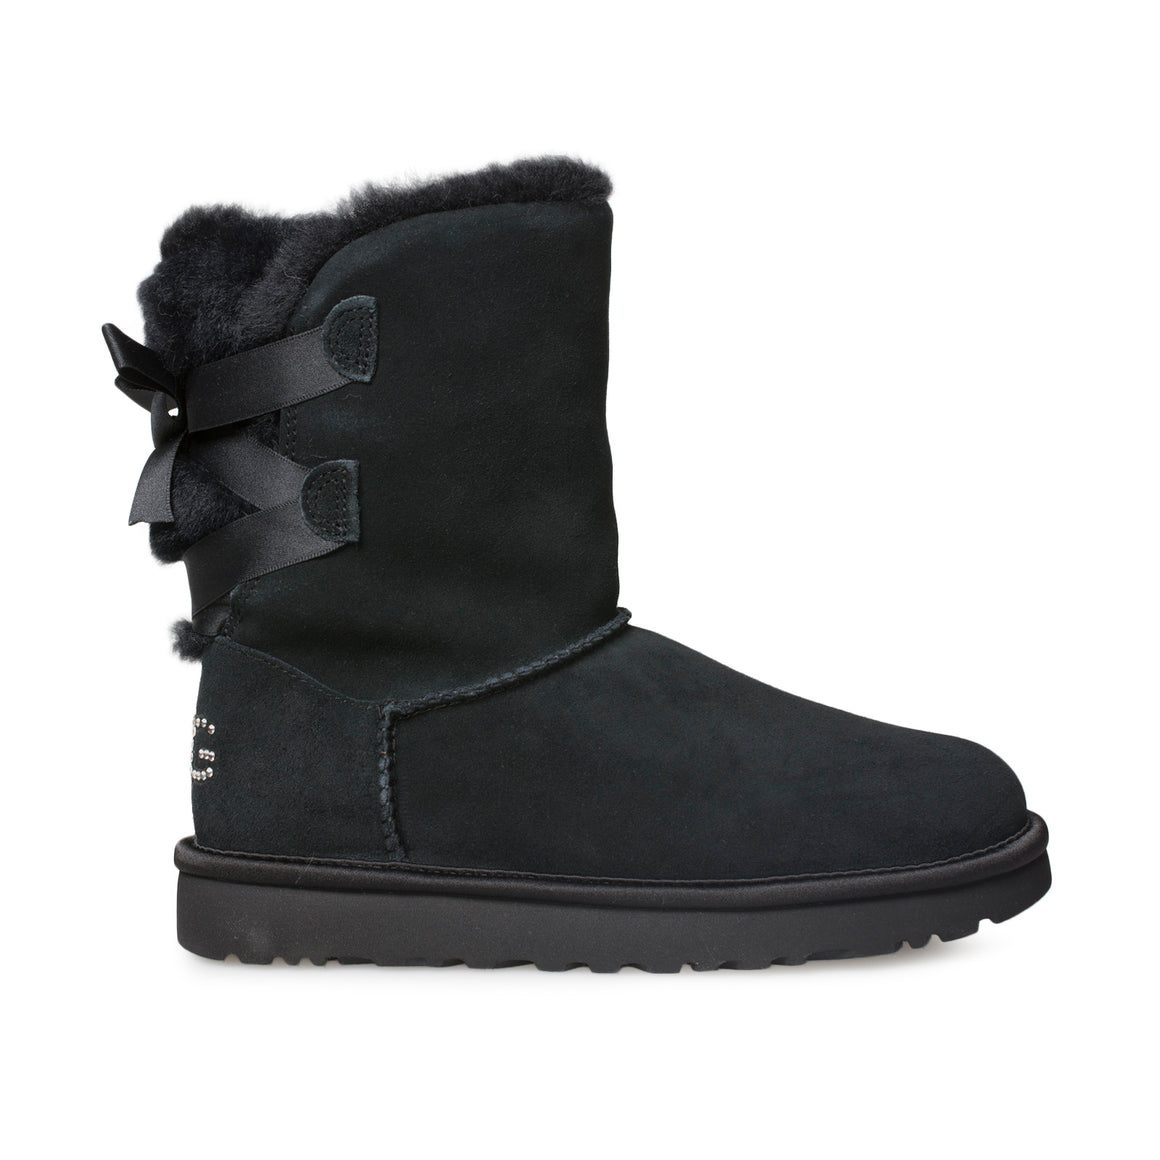 UGG Classic Bling Short Black Boots - Women's